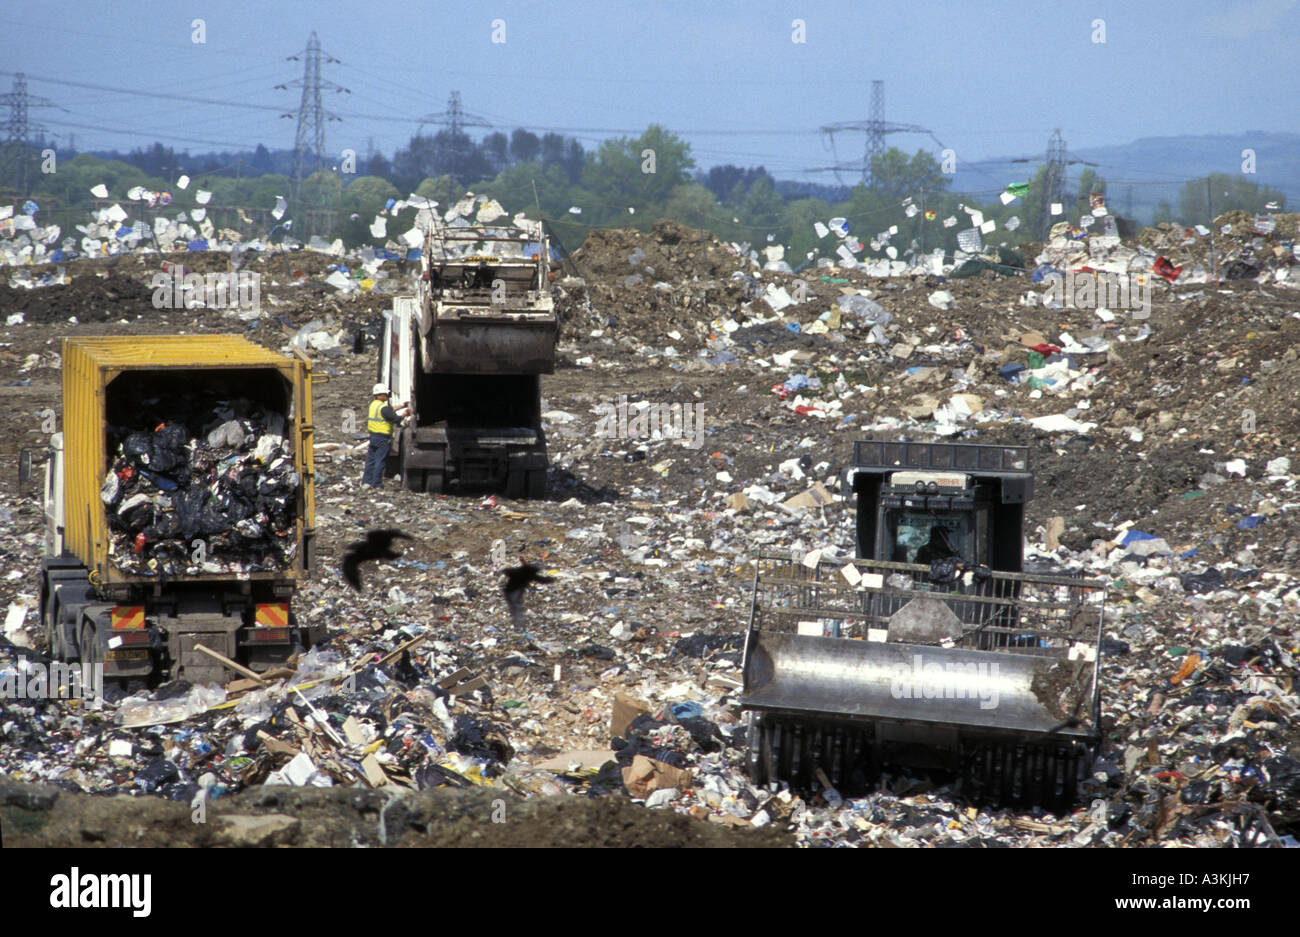 Hempsted landfill site near Gloucestershire England Stock Photo